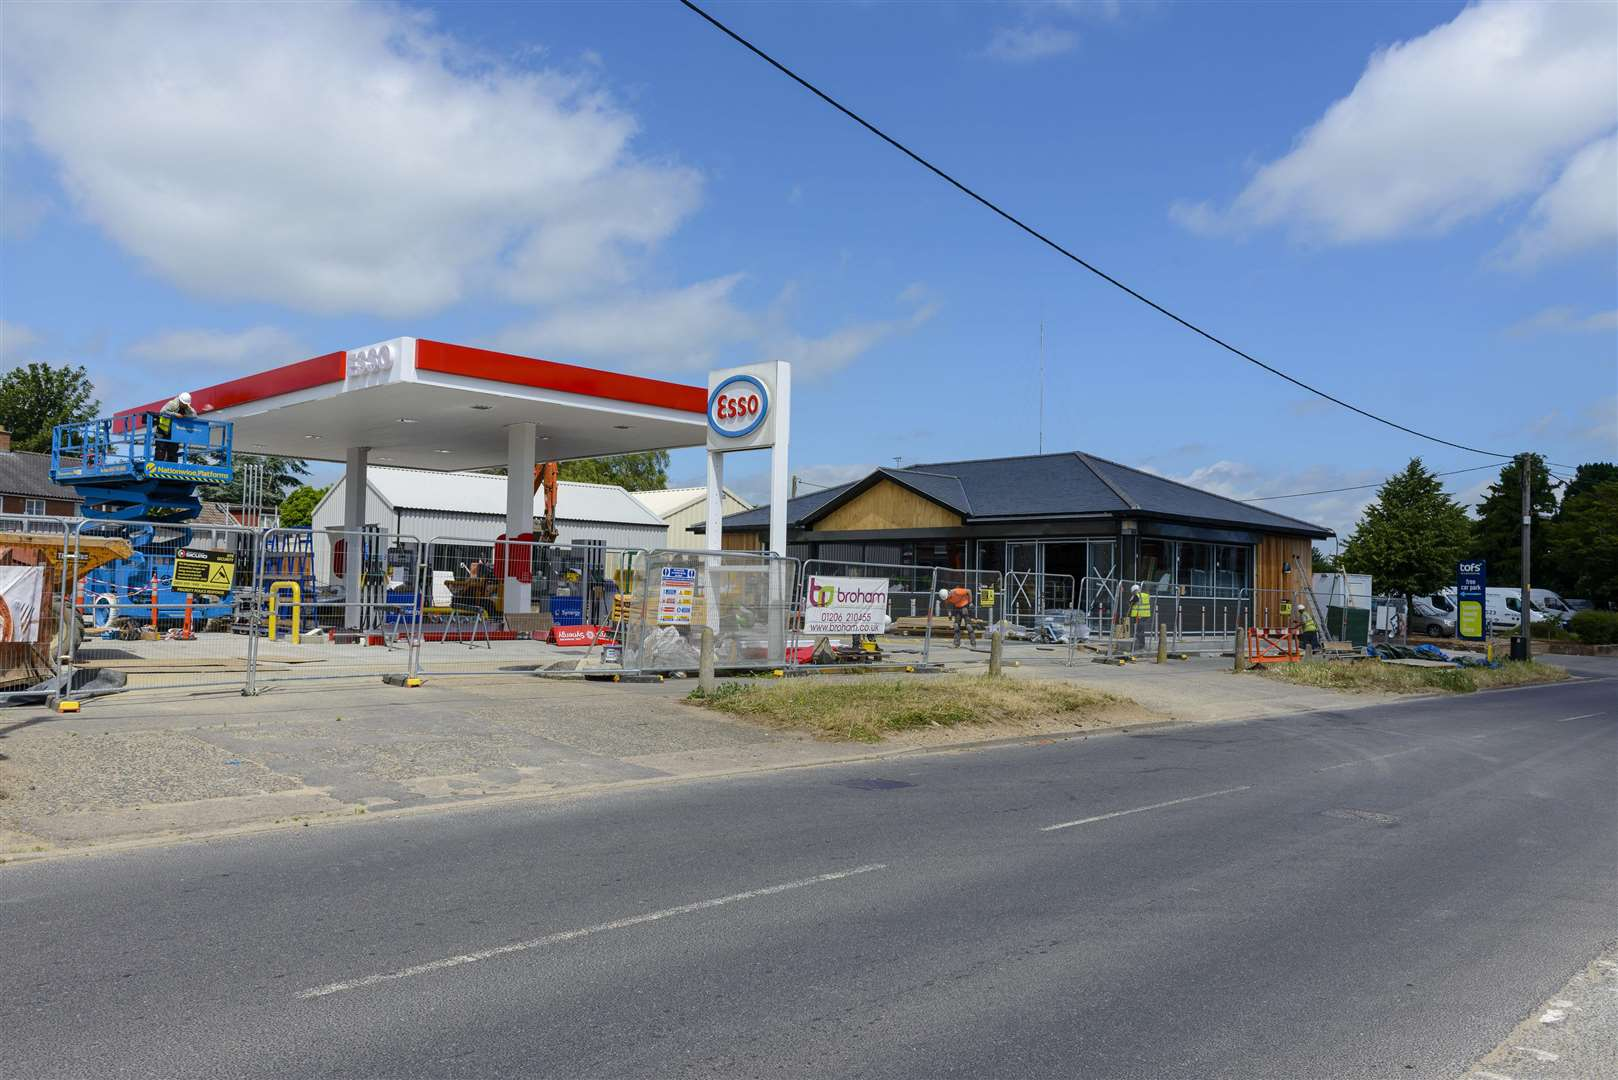 Harleston, Norfolk. 20 June 2018.Harleston petrol station which is nearly completion and will have a Budget convince store on site. ..Picture by Mark Bullimore Photography. (2644994)